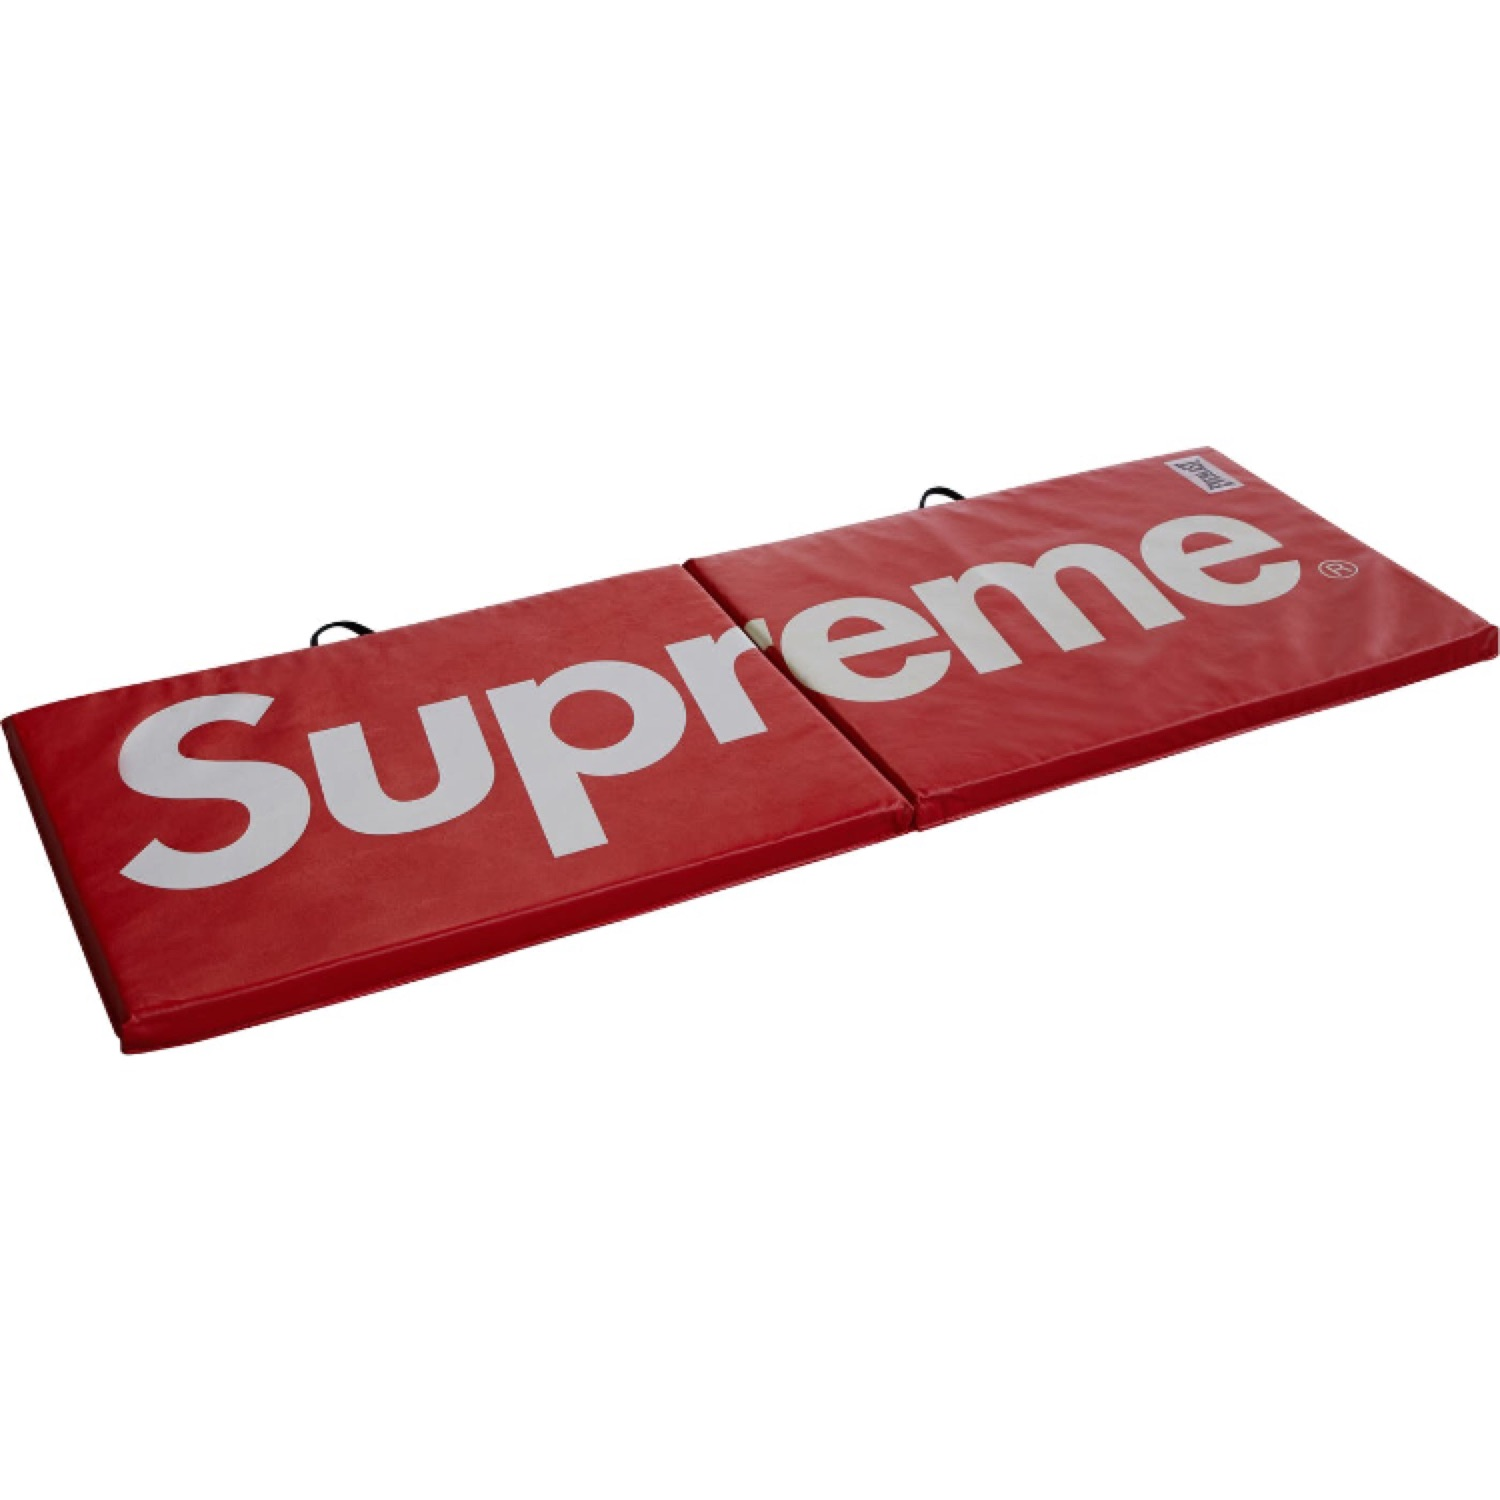 Supreme X Everlast Exercice Mat